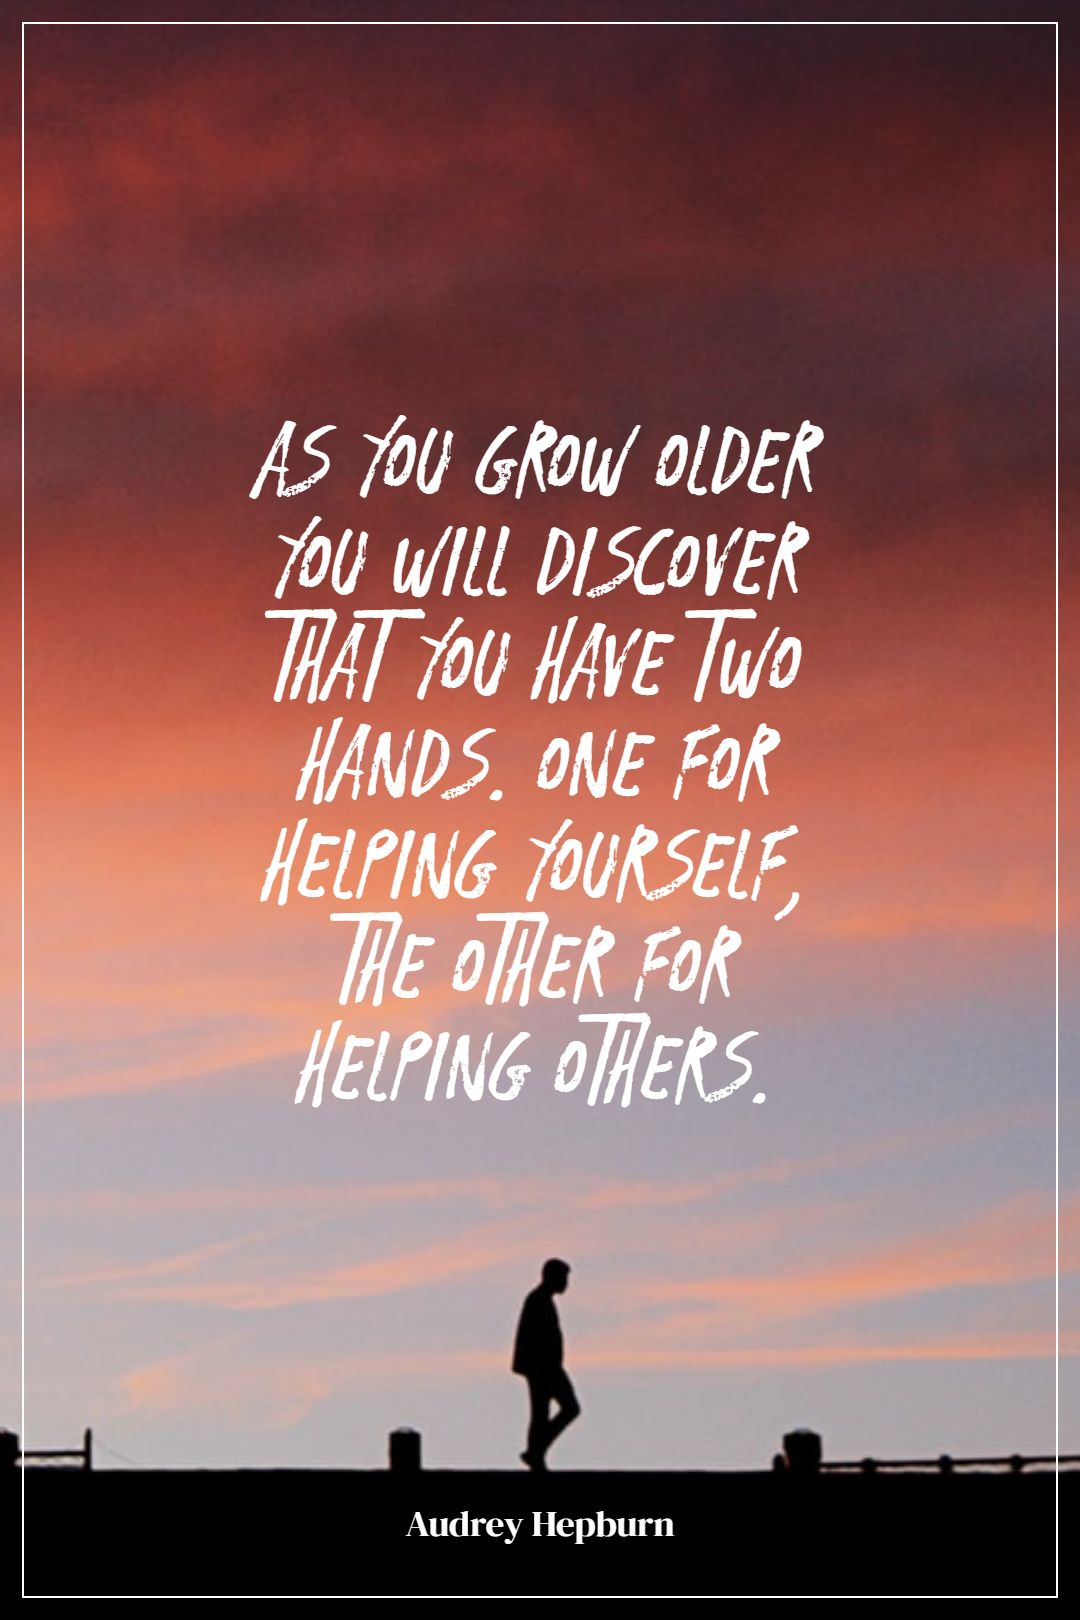 Quotes image of As you grow older you will discover that you have two hands. One for helping yourself, the other for helping others.